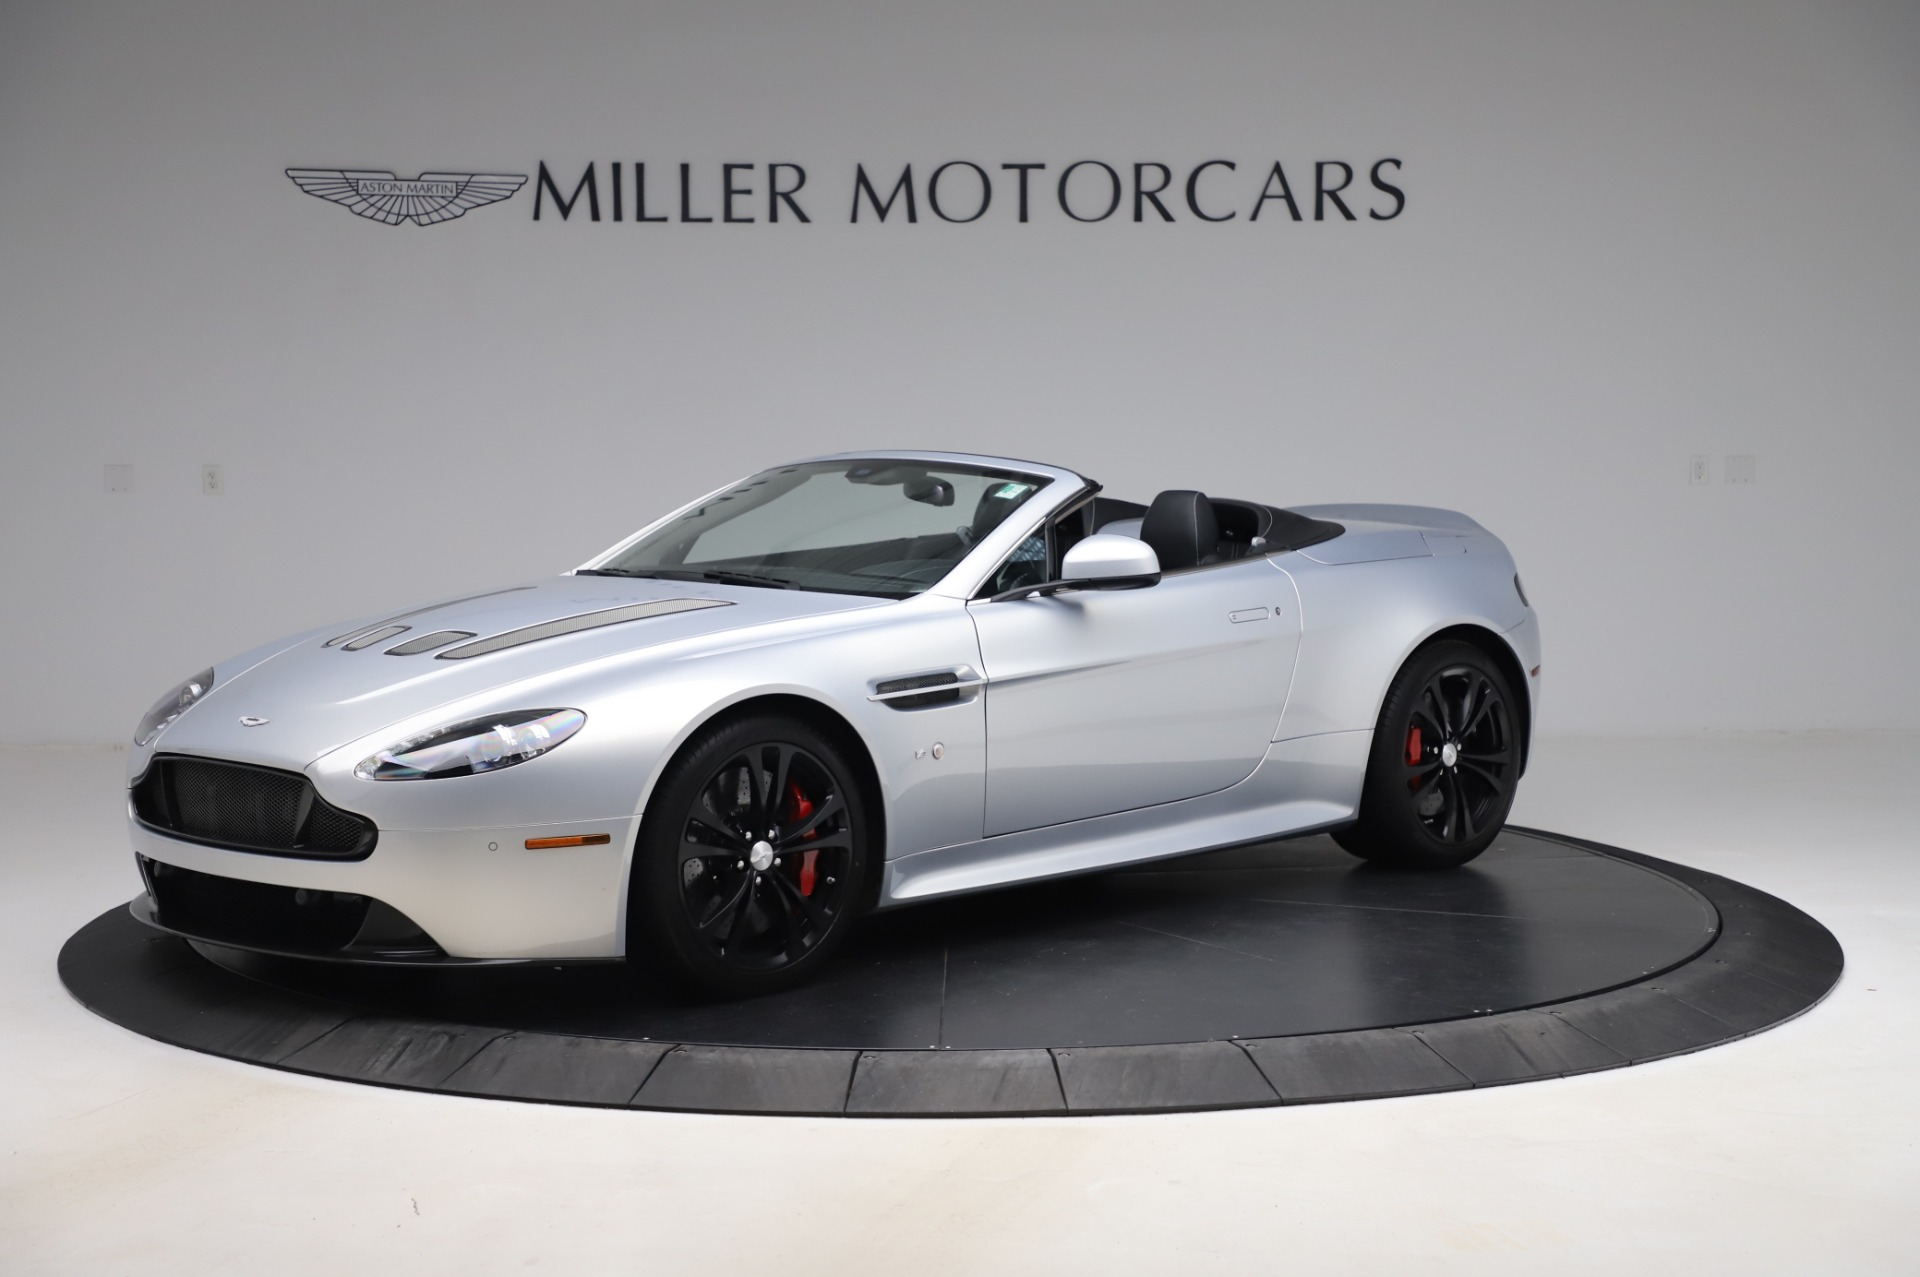 Pre Owned 2017 Aston Martin V12 Vantage S Roadster For Sale Miller Motorcars Stock A1452a